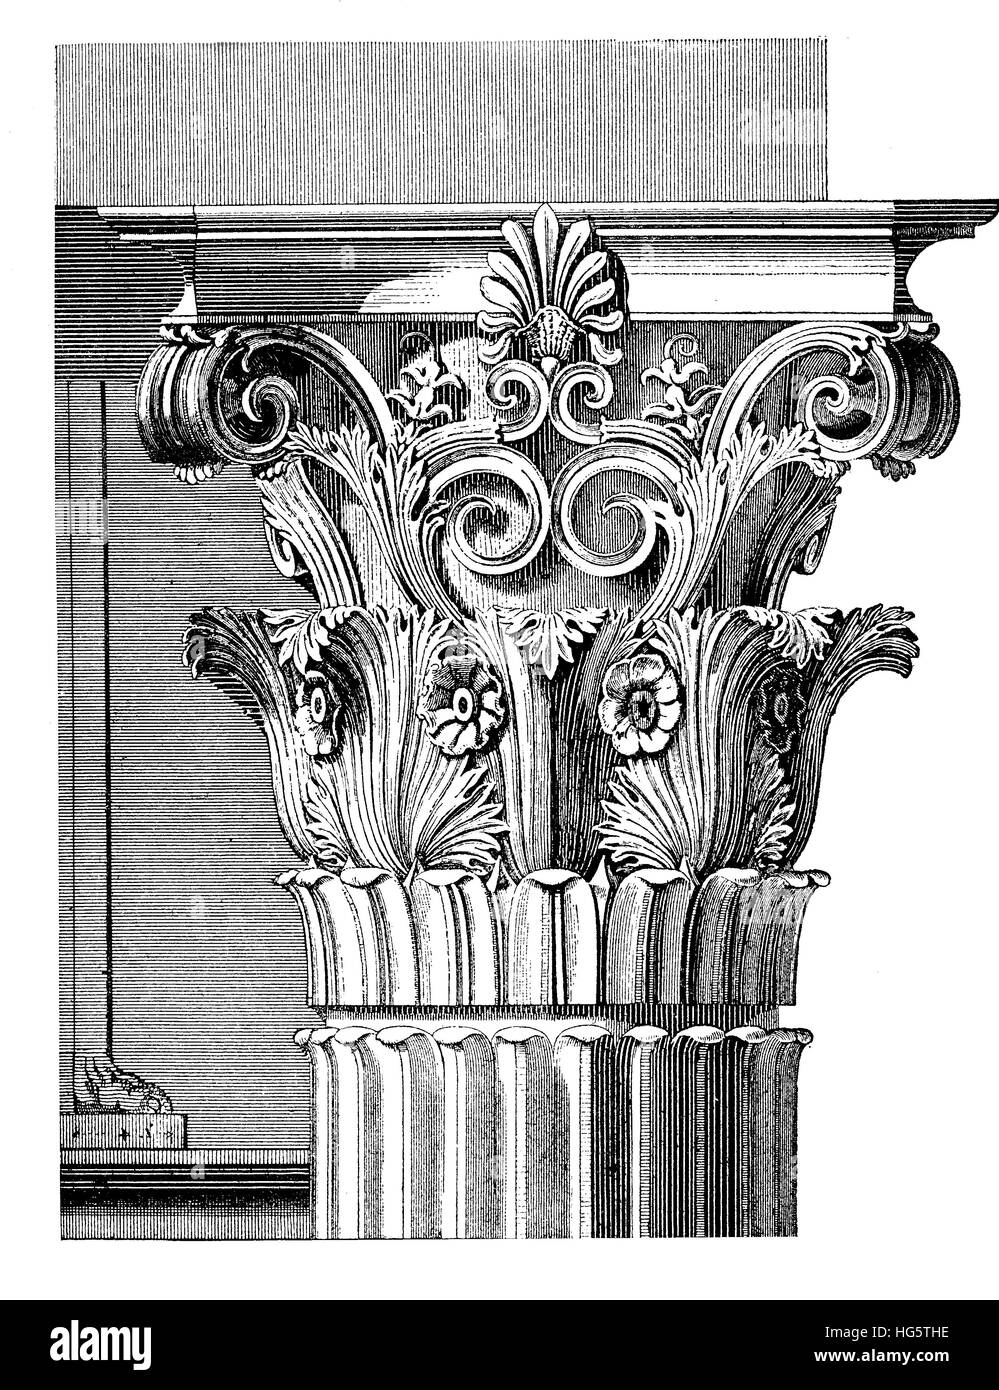 Architectural detail, elaborated Corinthian capital with acanthus leaves and scrolls,vintage engraving. Corinthian - Stock Image